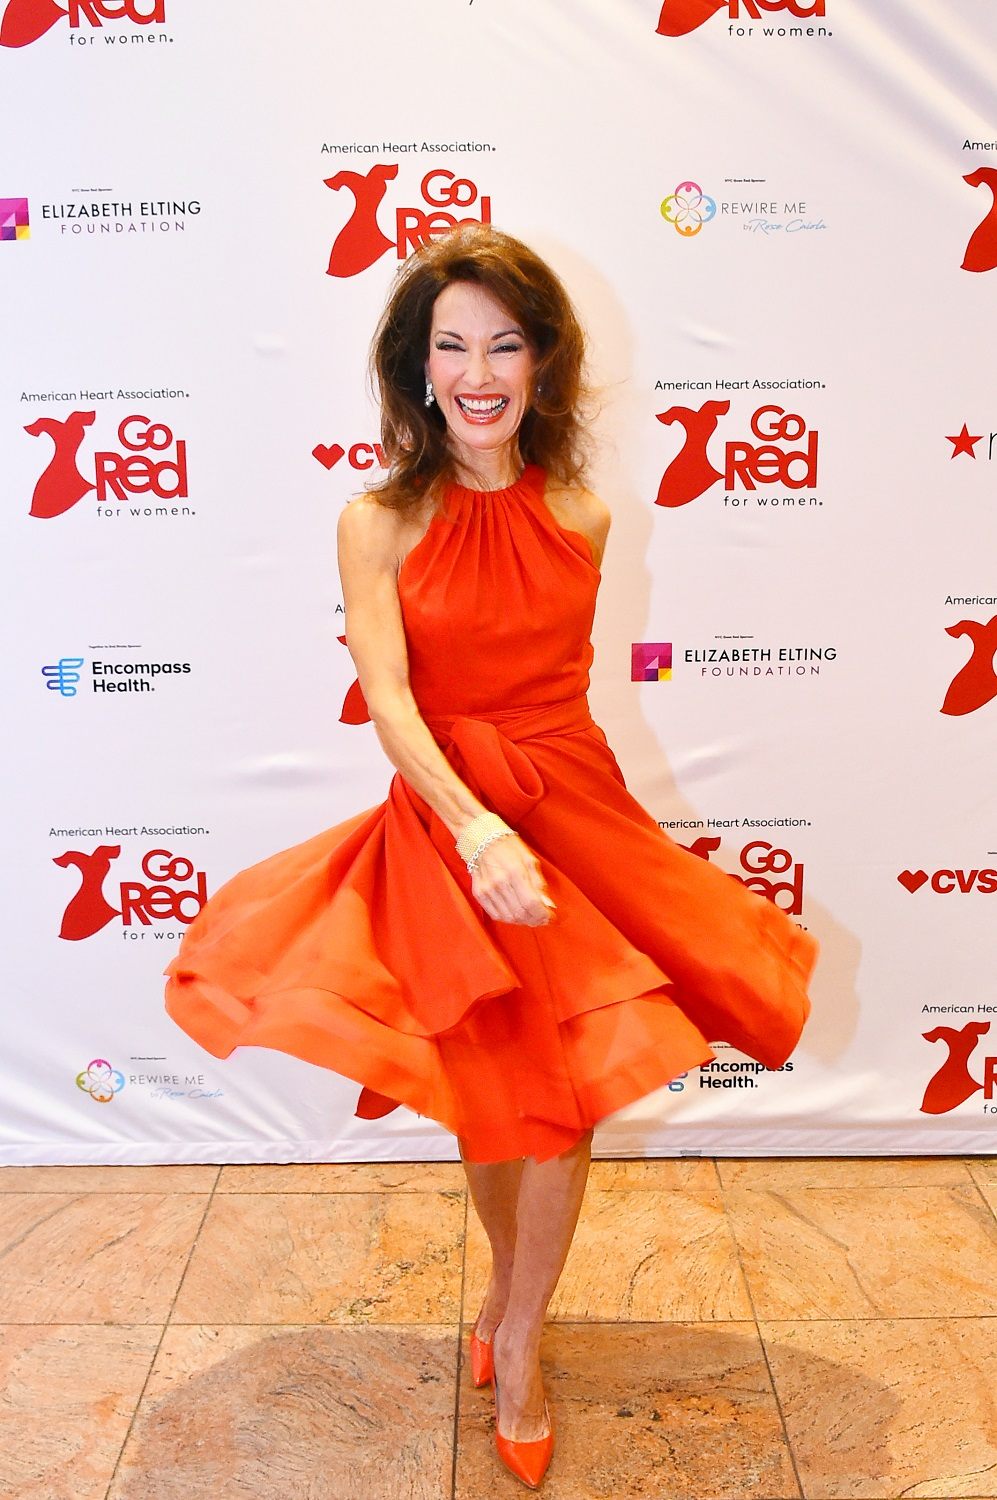 Susan Lucci in red photo